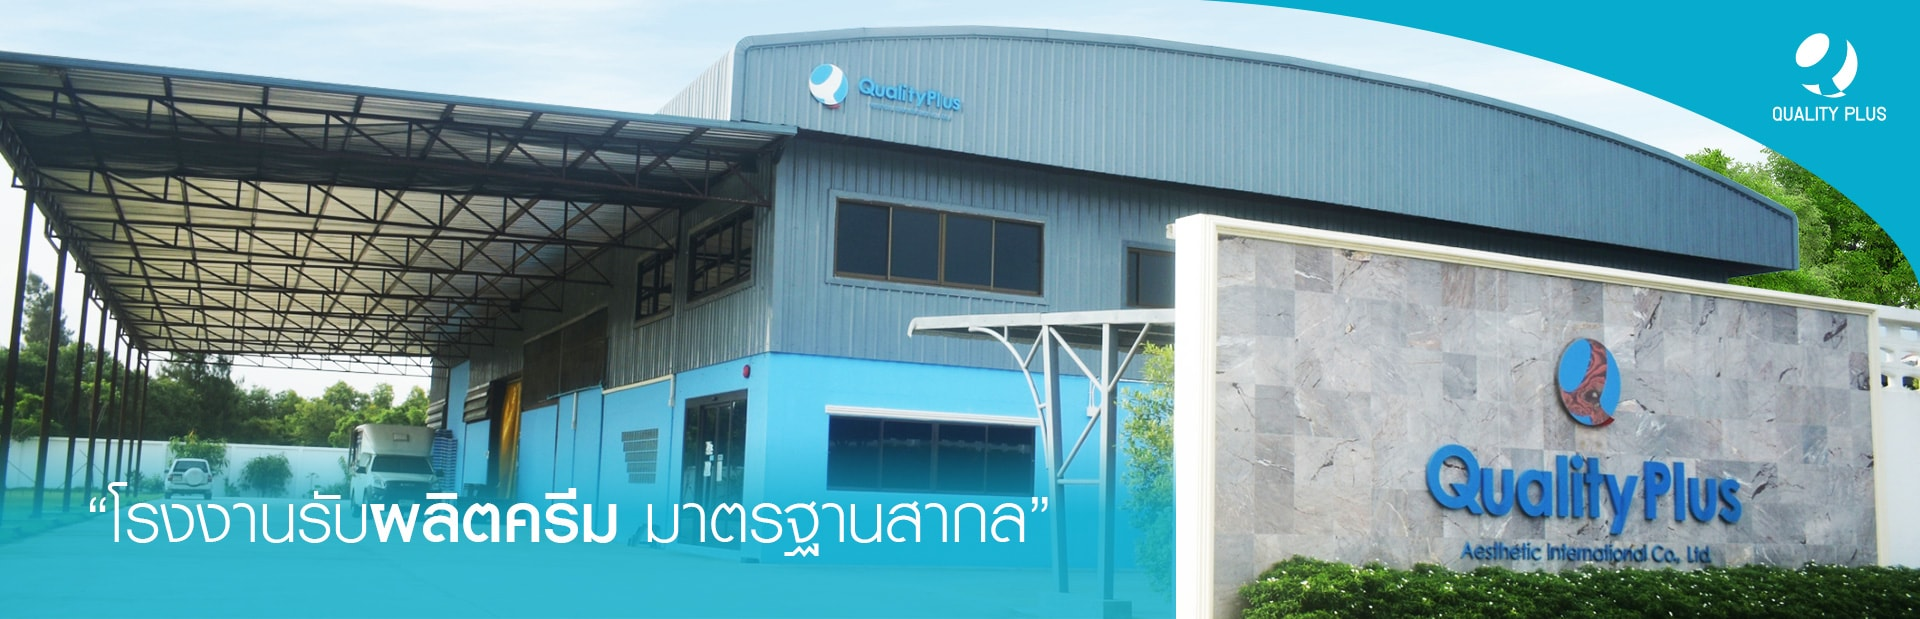 Quality Plus - Leading OEM Cosmetic Manufacture & Laboratory Thailand